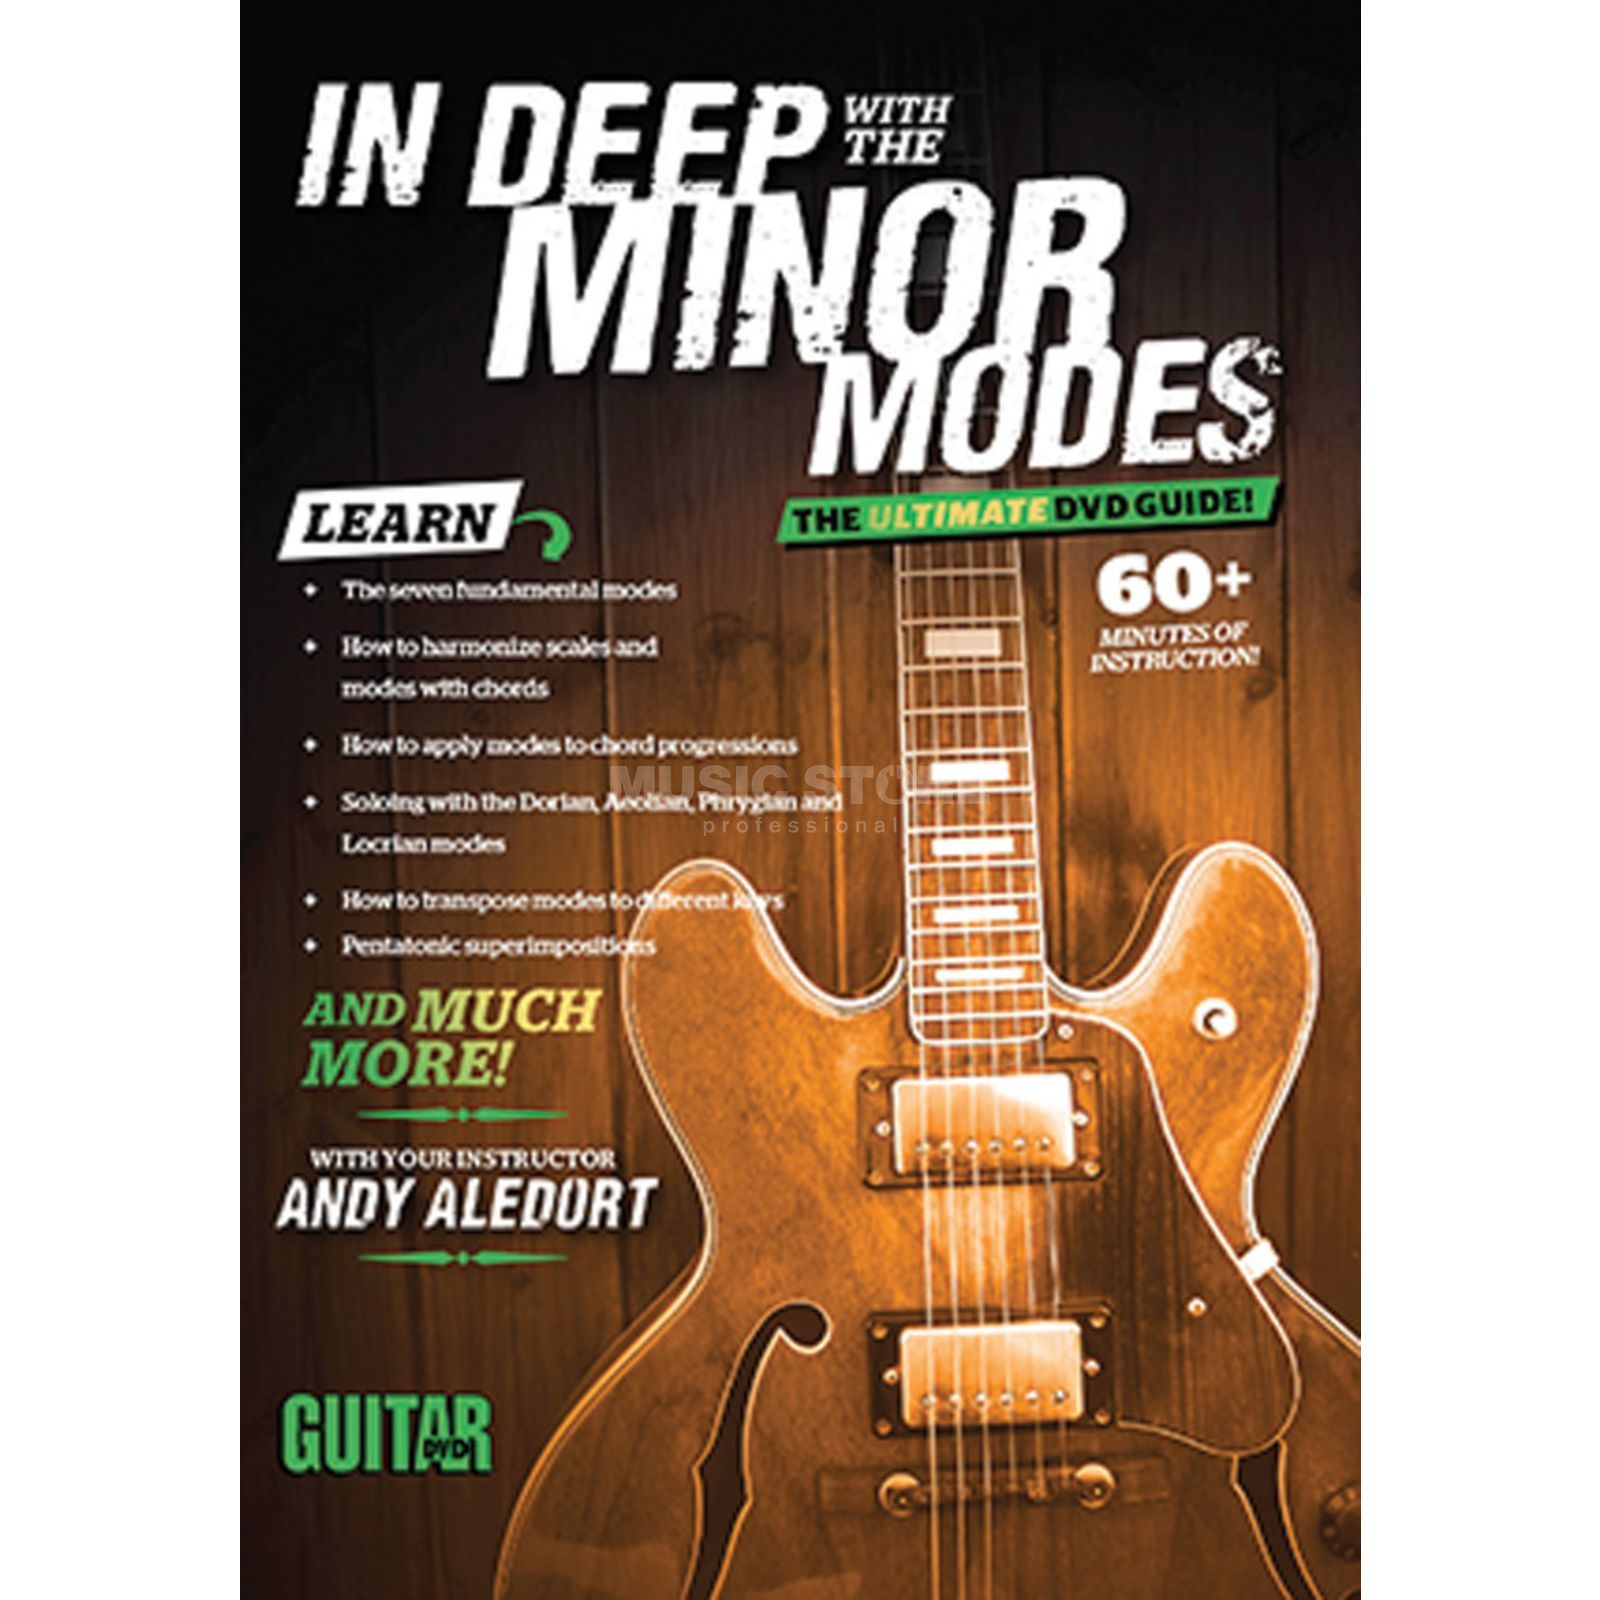 Alfred Music Guitar World: In Deep with the Minor Modes Produktbillede